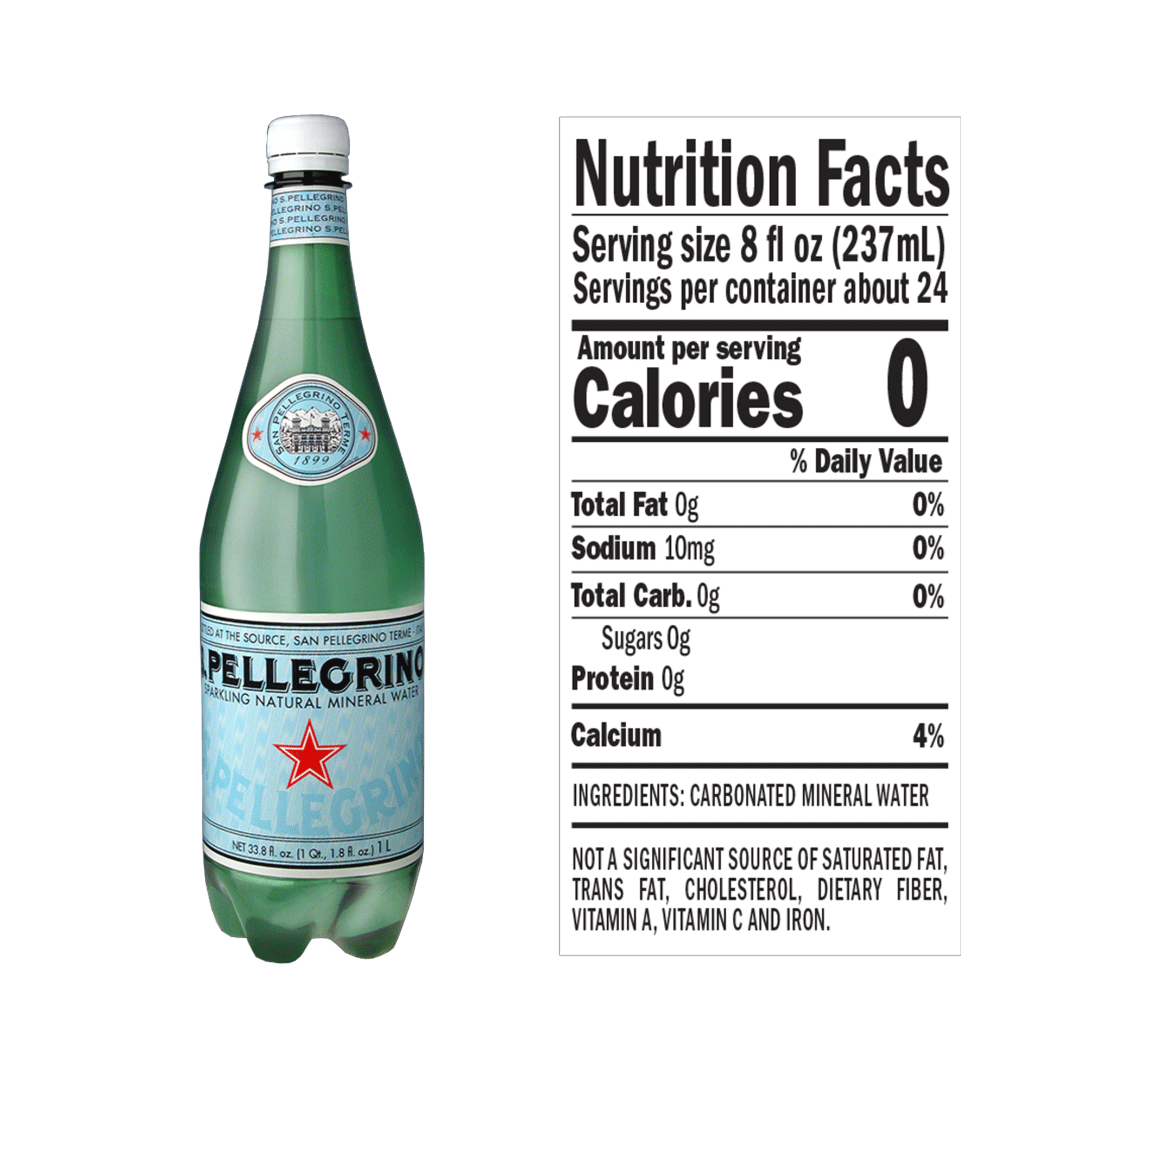 S.Pellegrino® Sparkling Natural Mineral Water Plastic Bottle Image2